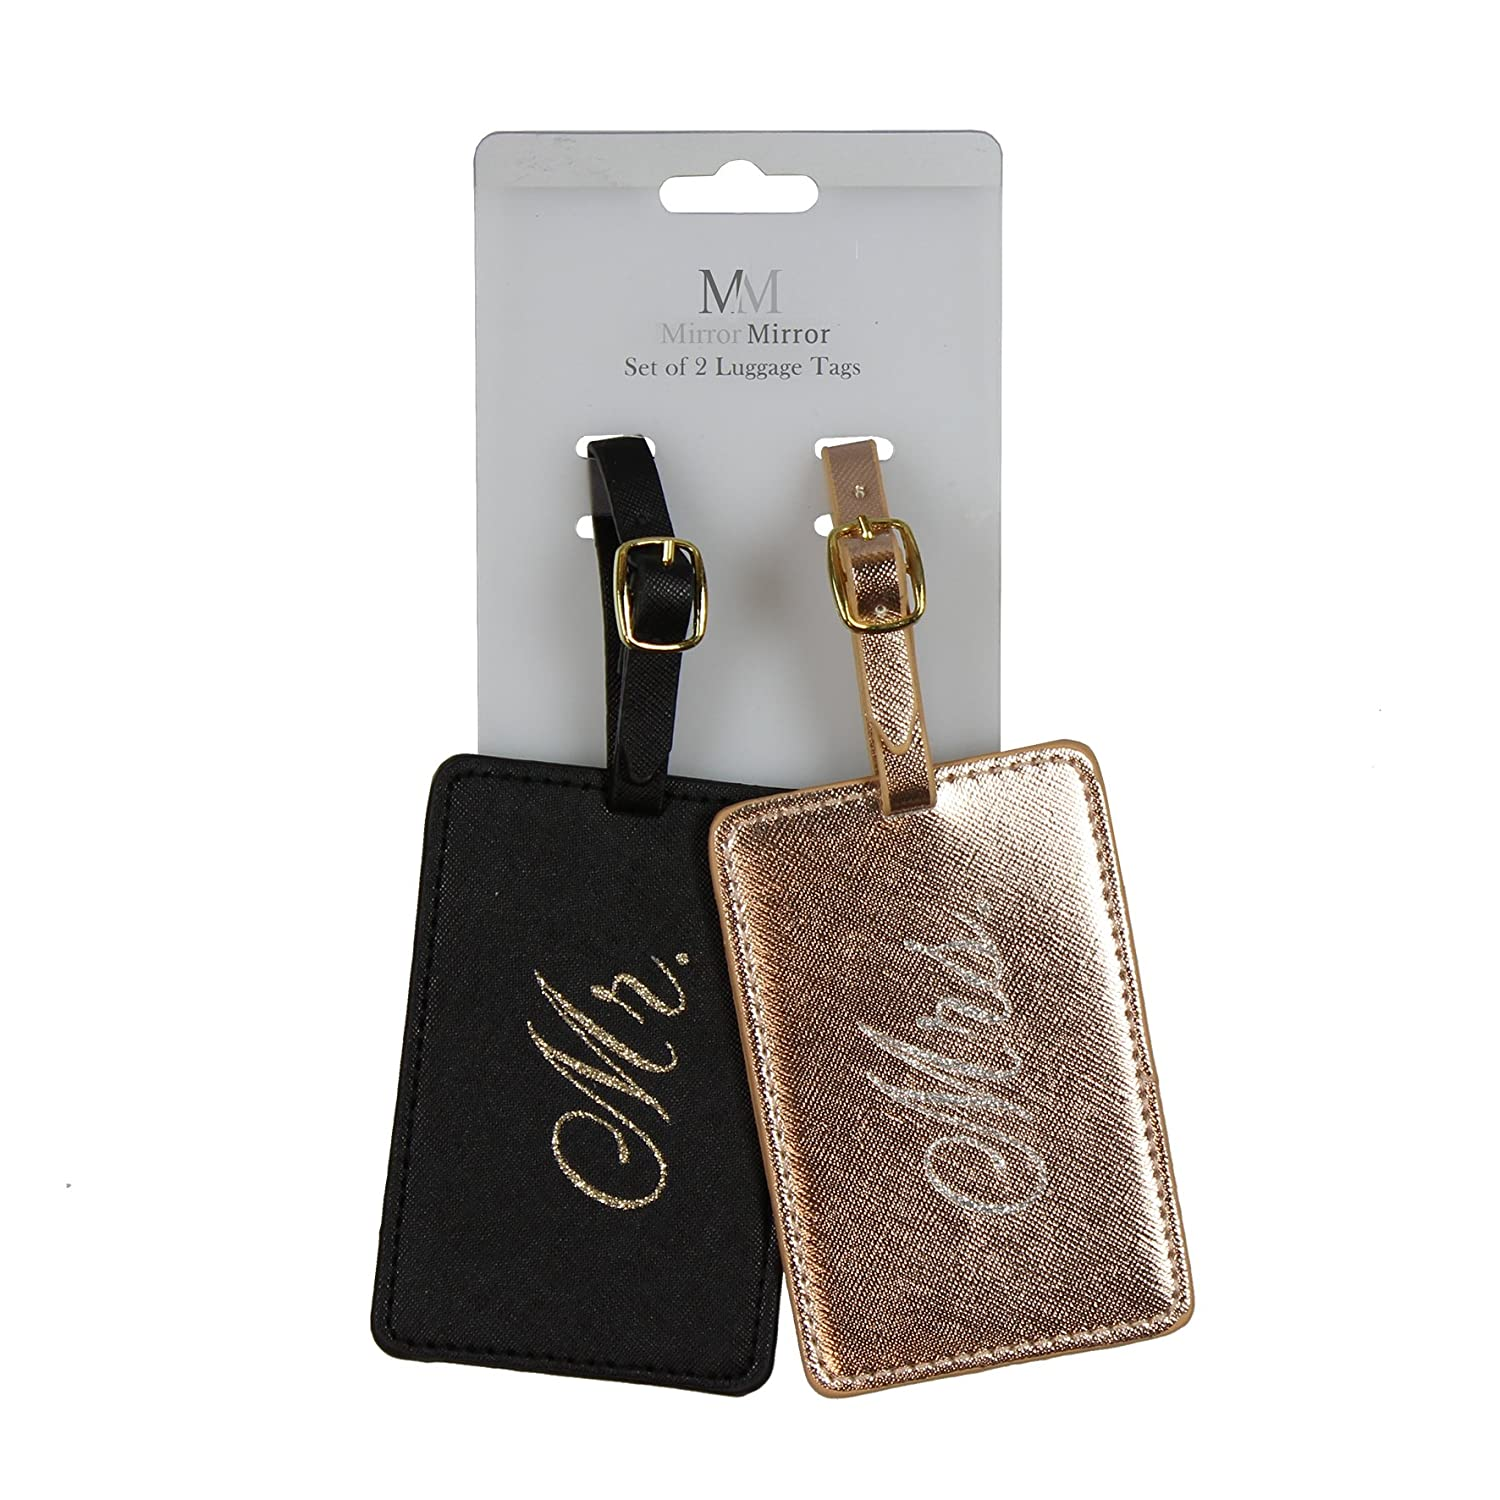 Amazon.com: Always Forever\' Mr. And Mrs. Luggage Tags - WTC713 ...